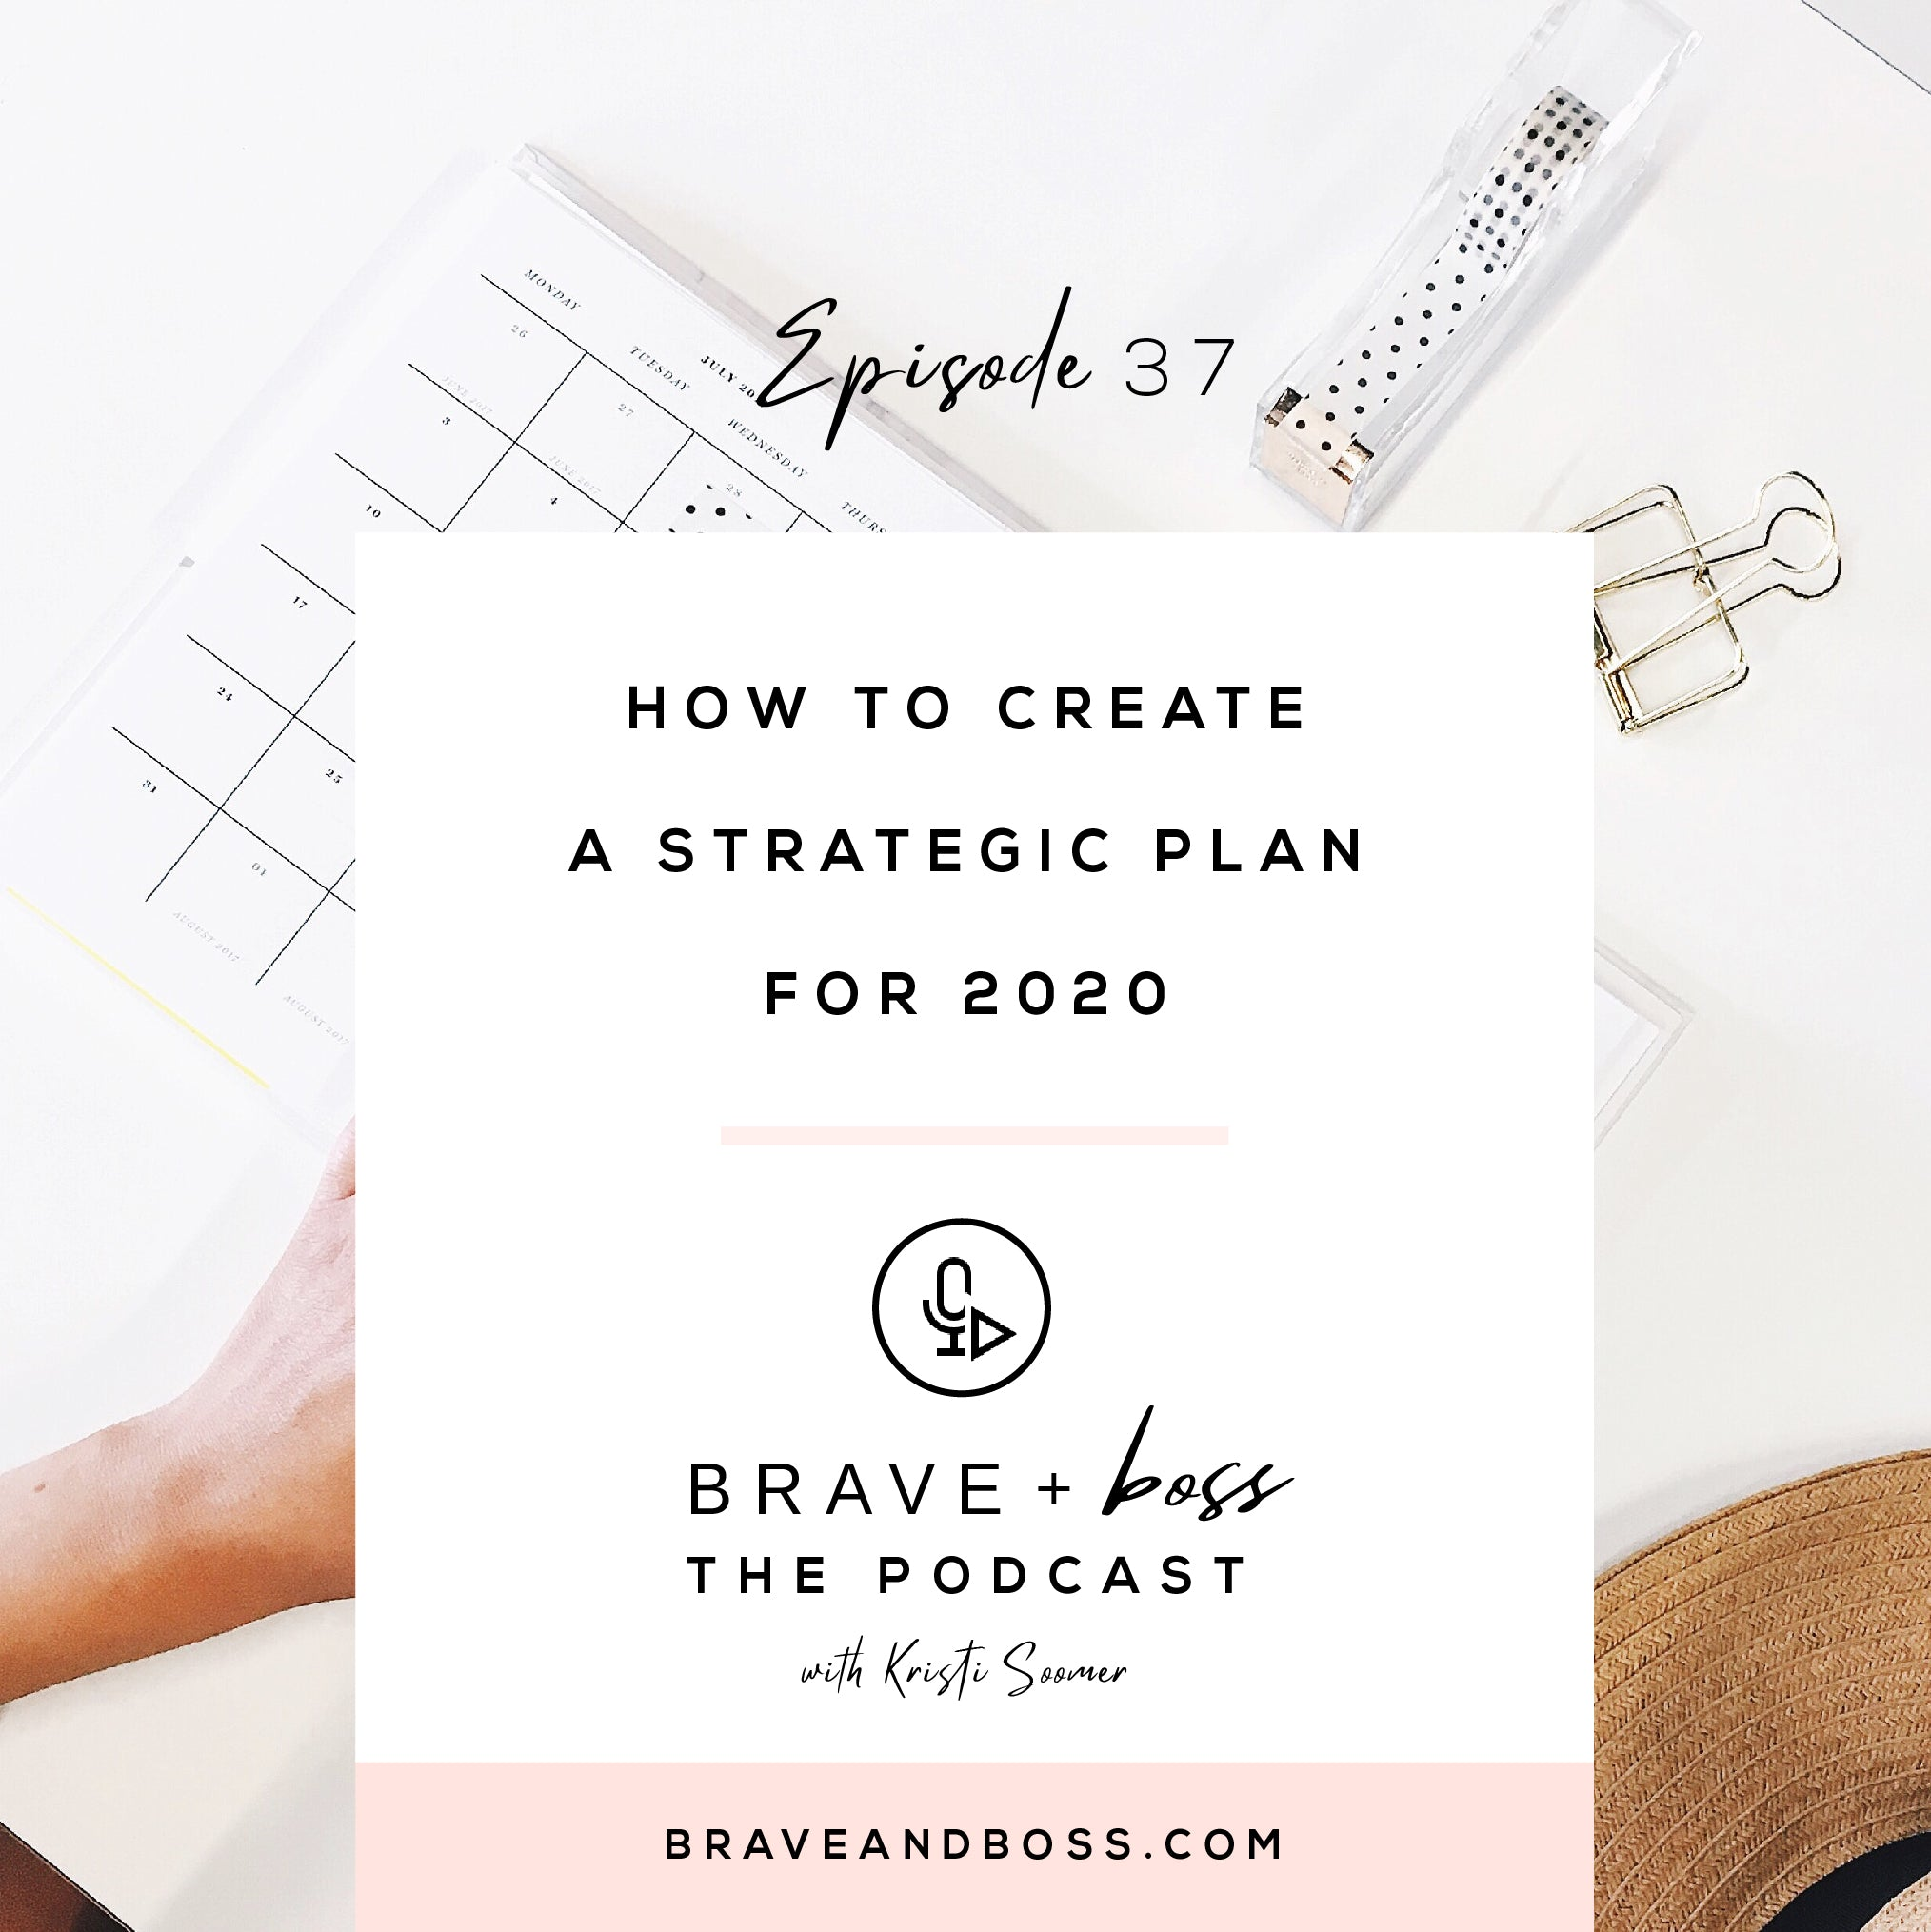 How to Create a Strategic Plan for 2020